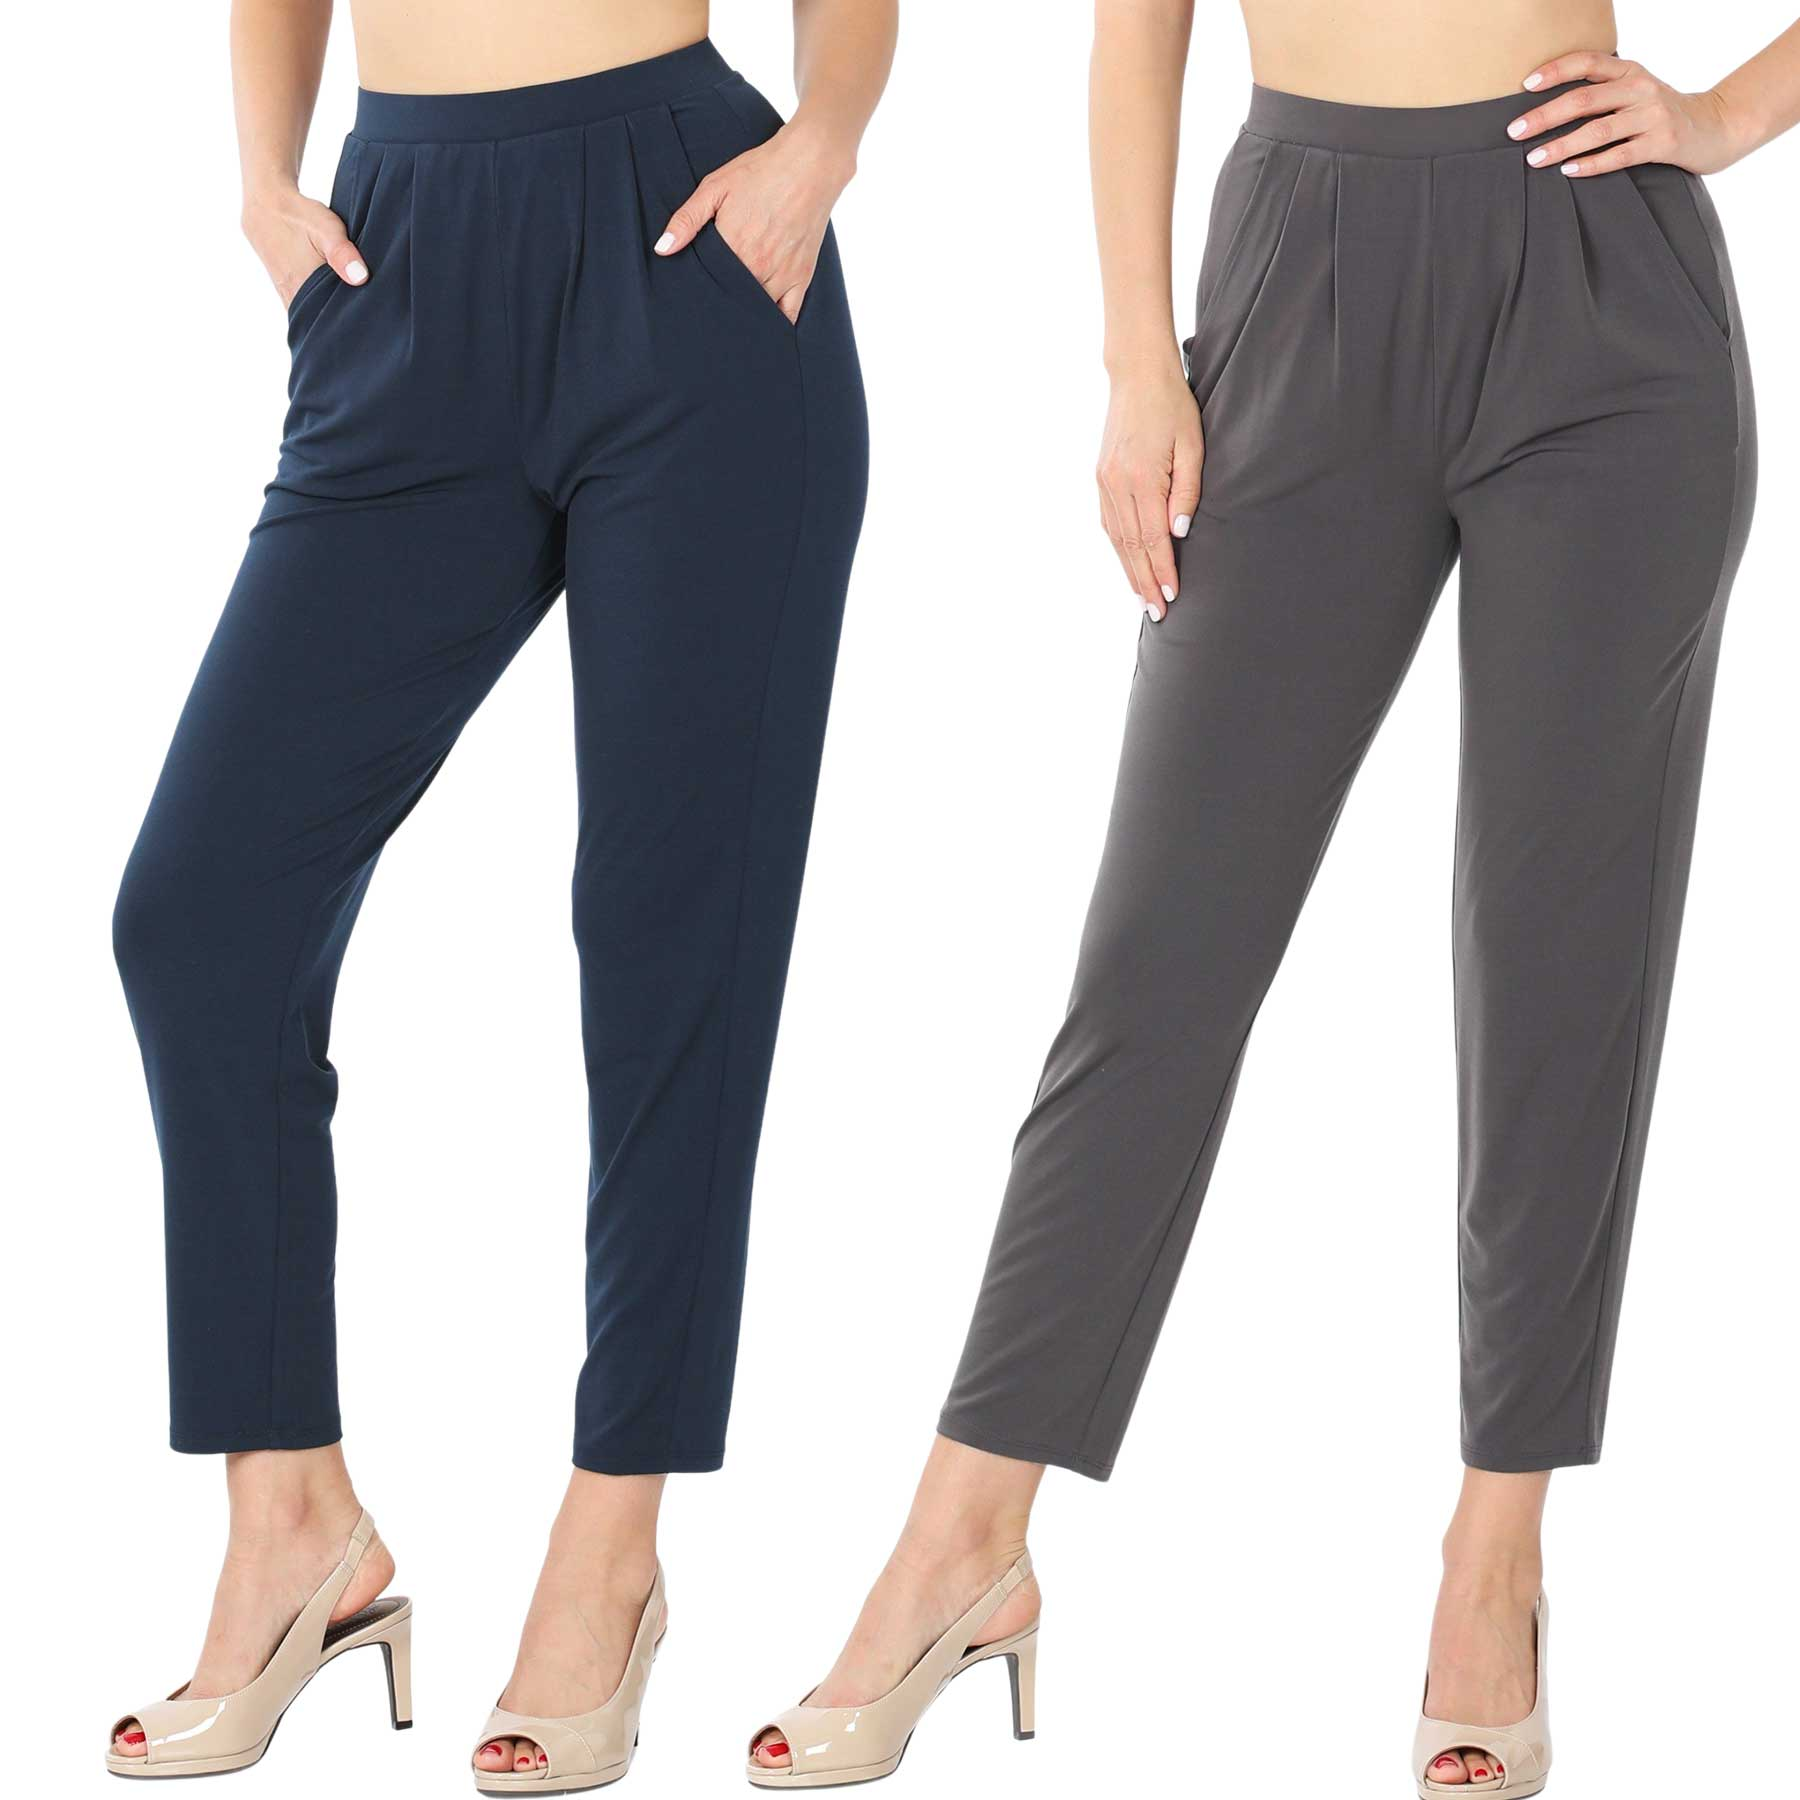 Ity Pleated Waist Pants w/ Side Pockets 10019